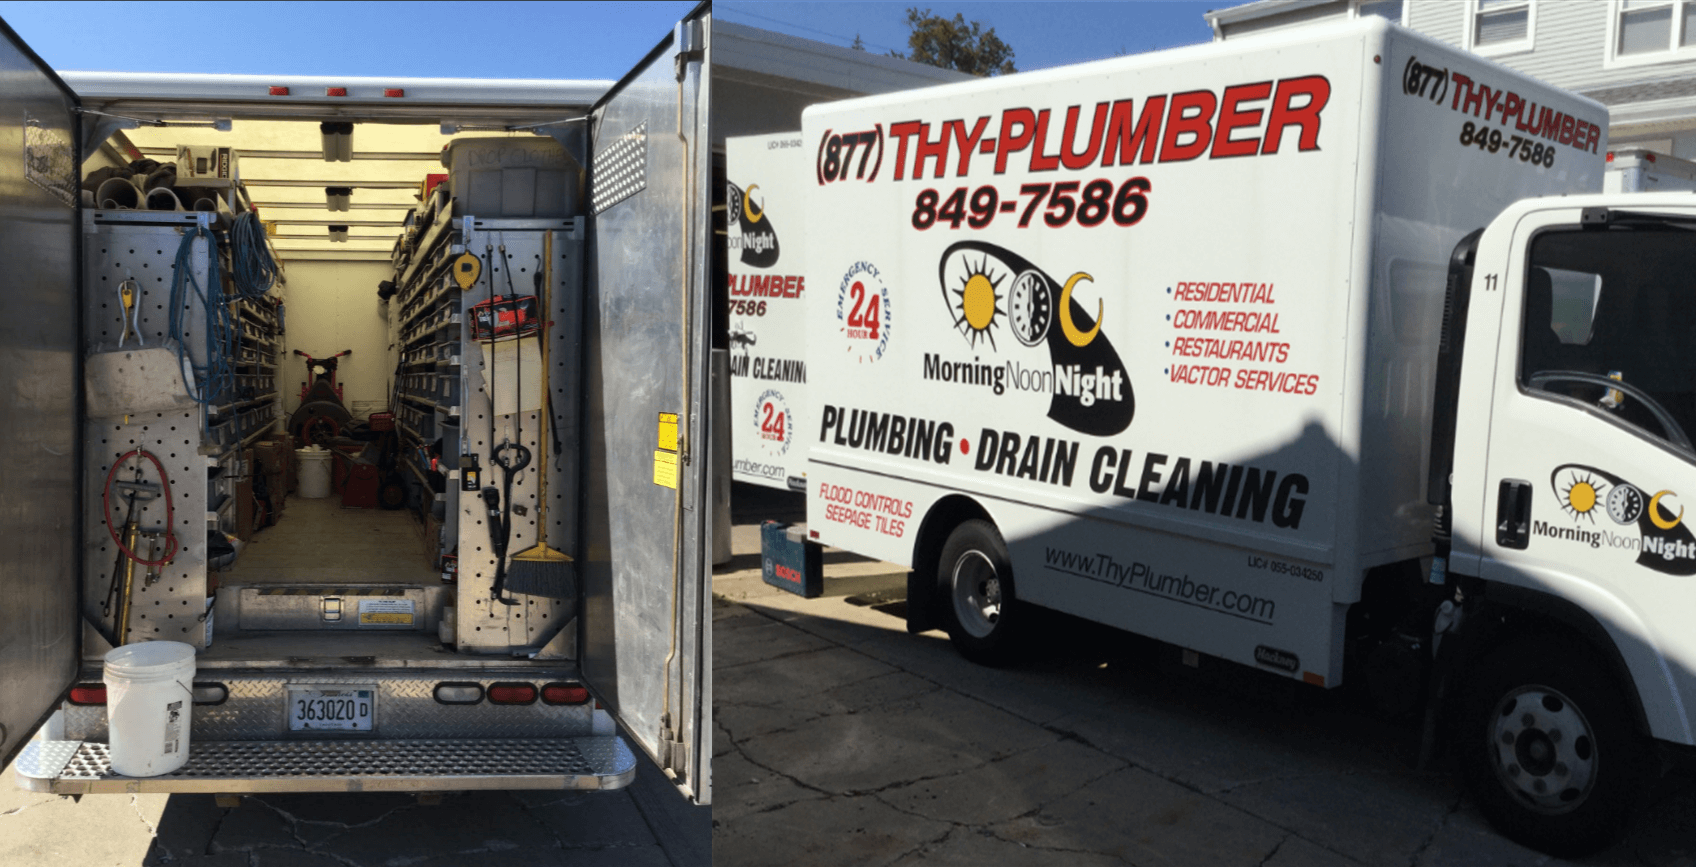 Plumbers - Chicago, IL